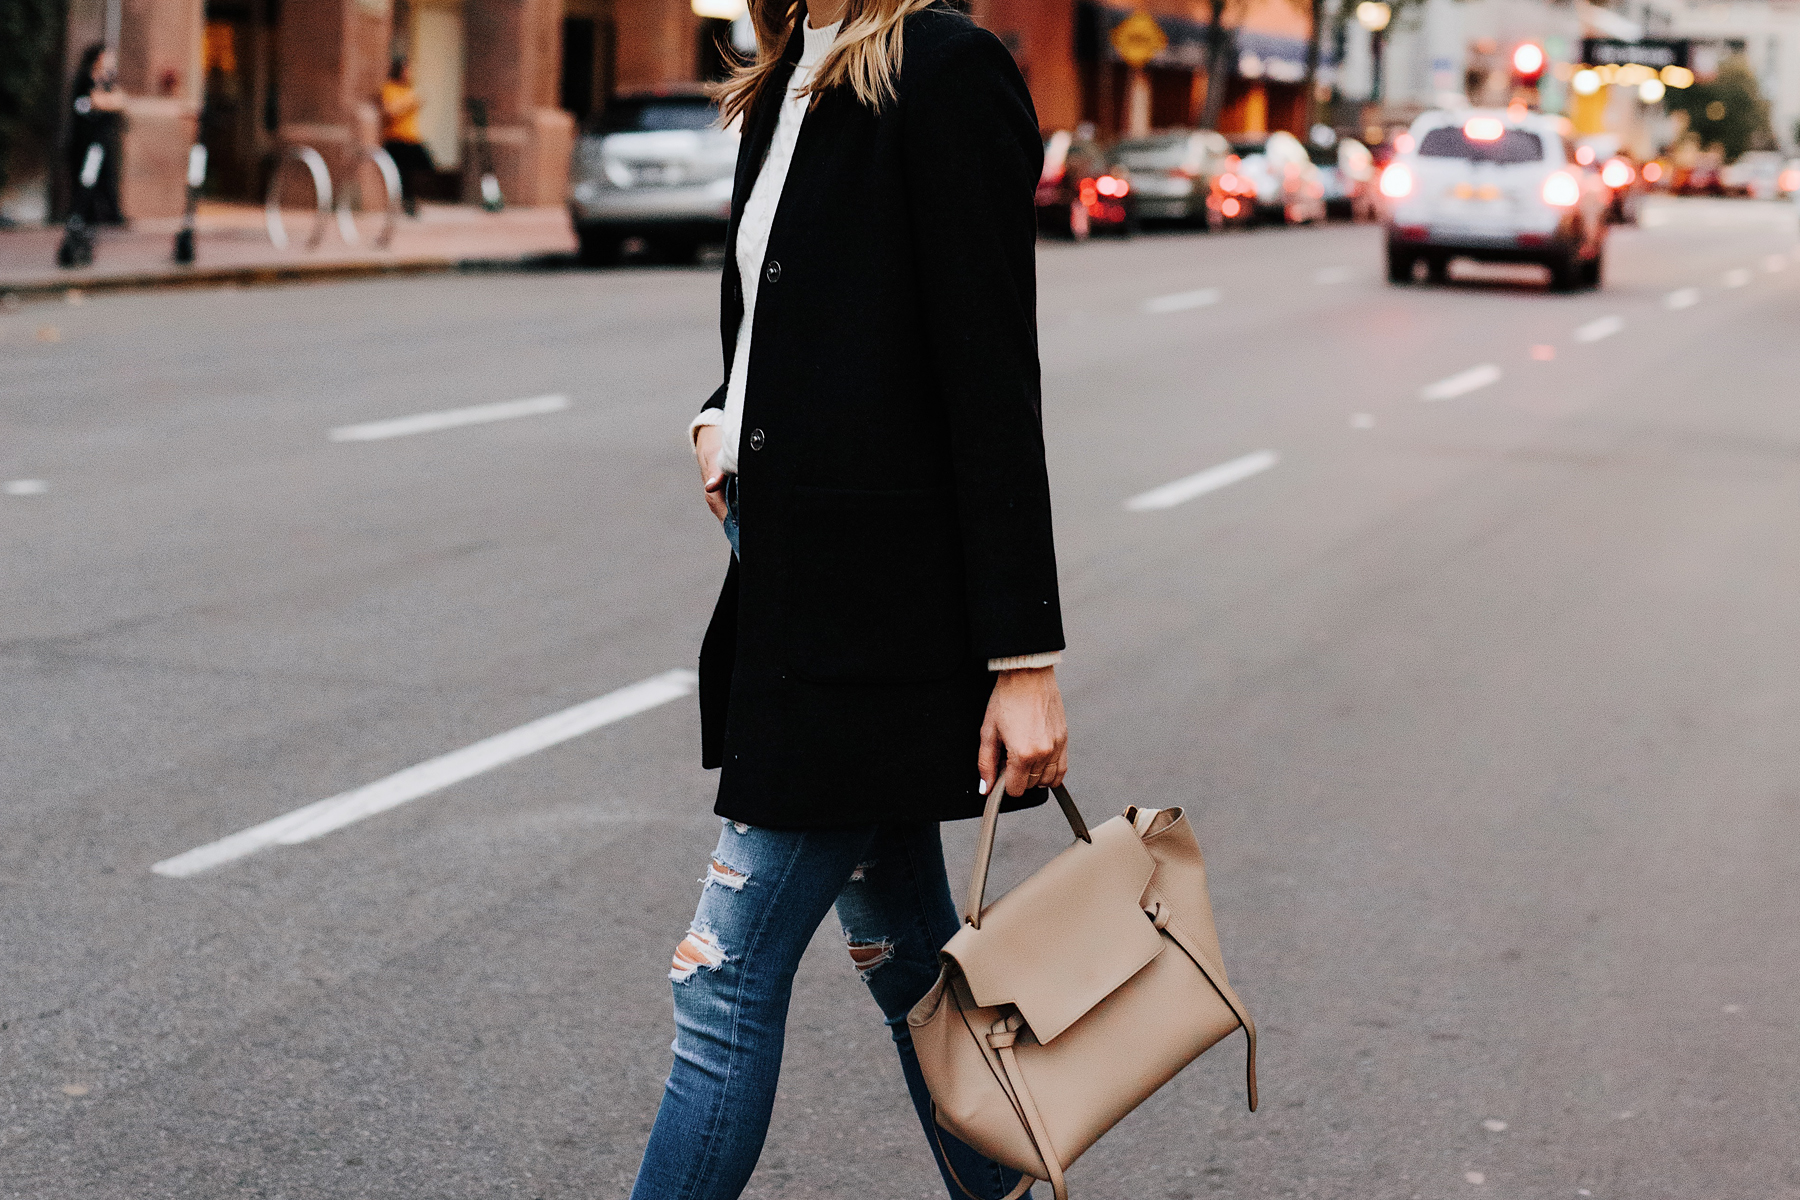 Woman Wearing Abercrombie Black Wool Coat Cable Knit White Sweater Denim Ripped Skinny Jeans Outfit Celine Mini Belt Bag Fashion Jackson San Diego Fashion Blogger Street Style